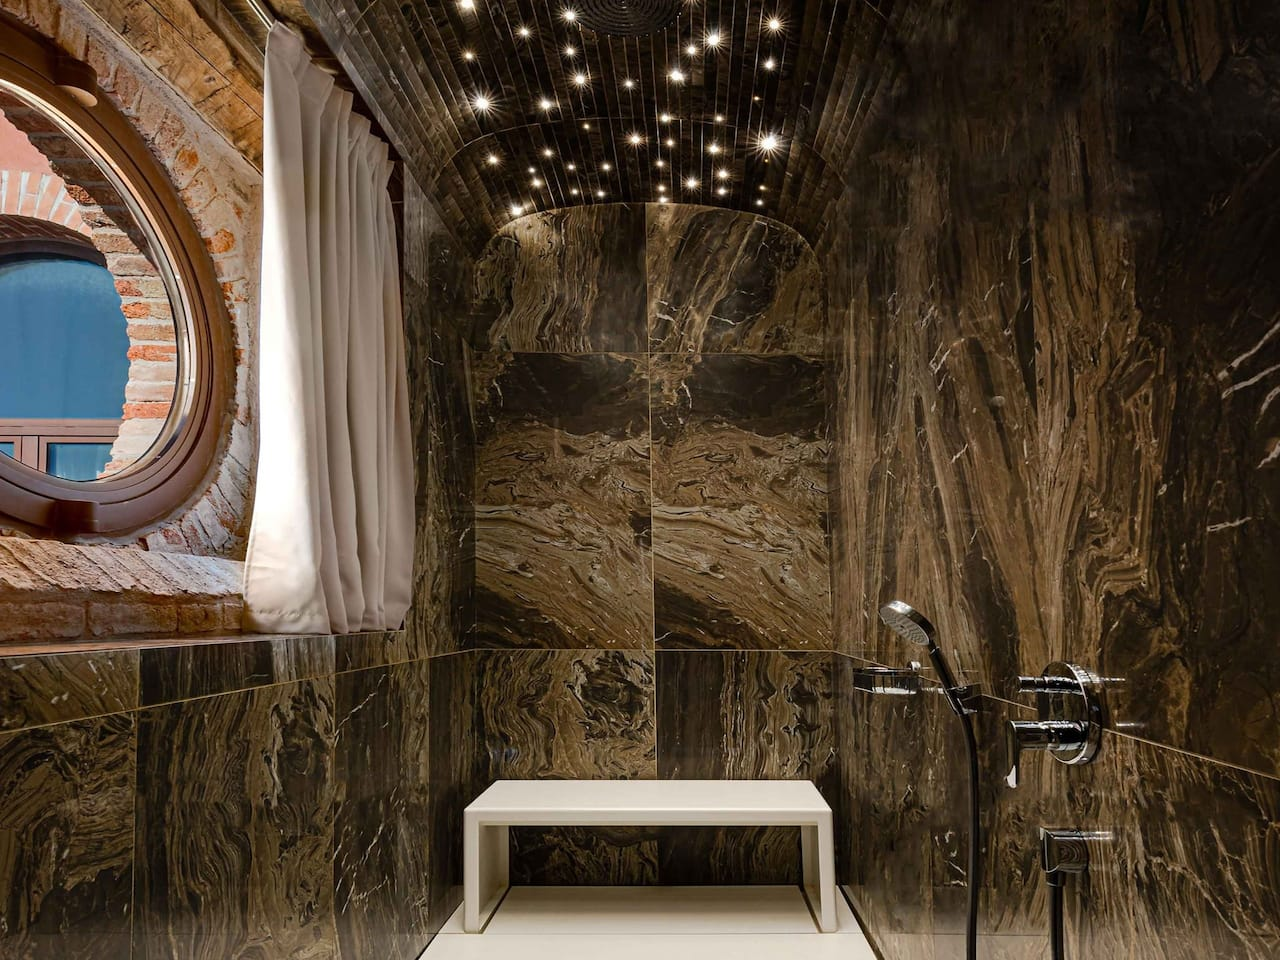 Hyatt Centric Murano bathroom